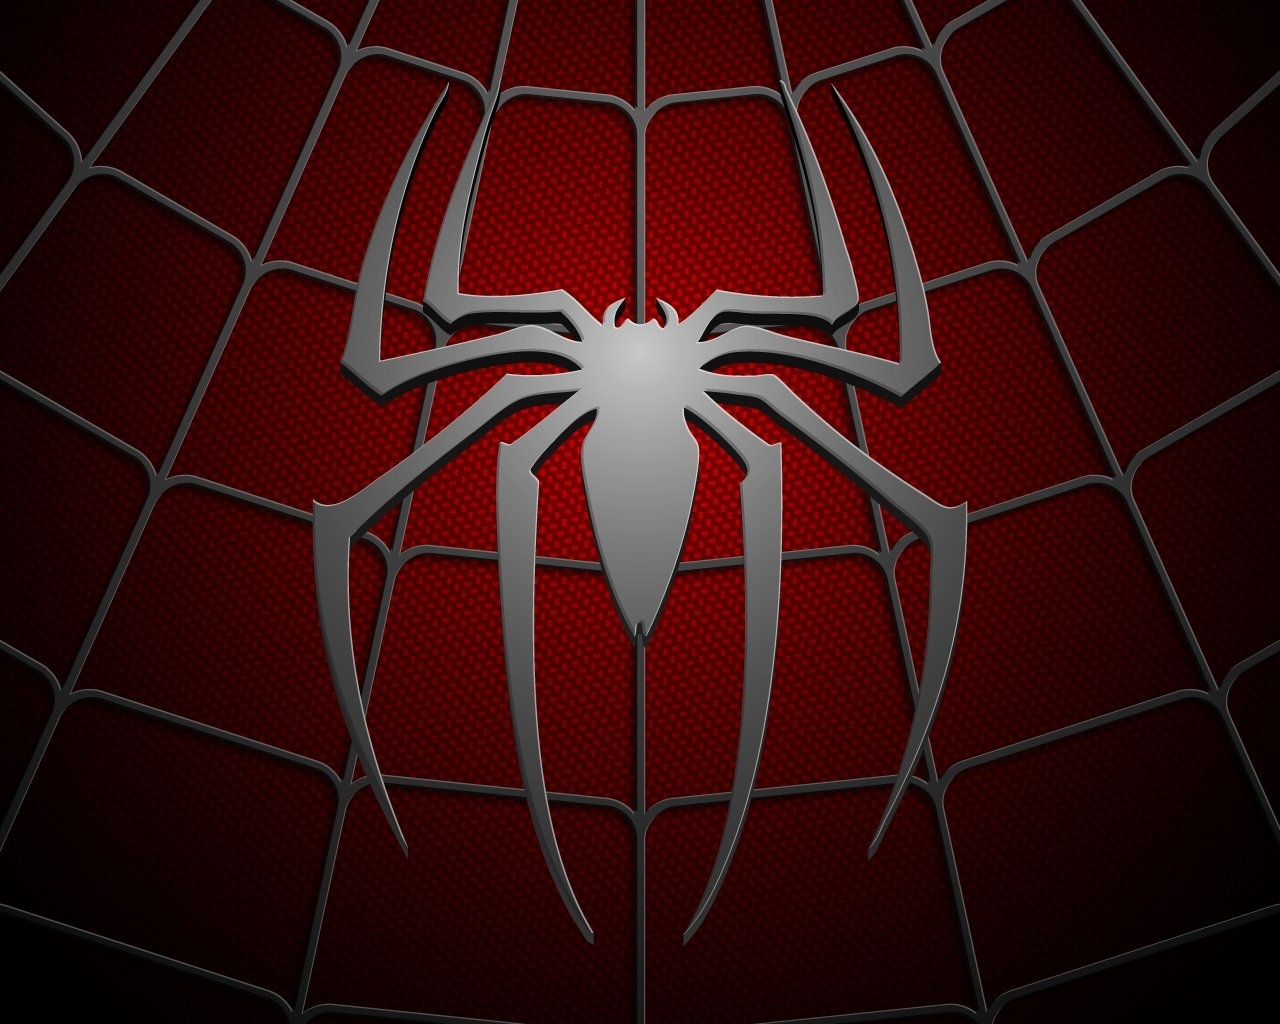 696 spider-man hd wallpapers | background images - wallpaper abyss